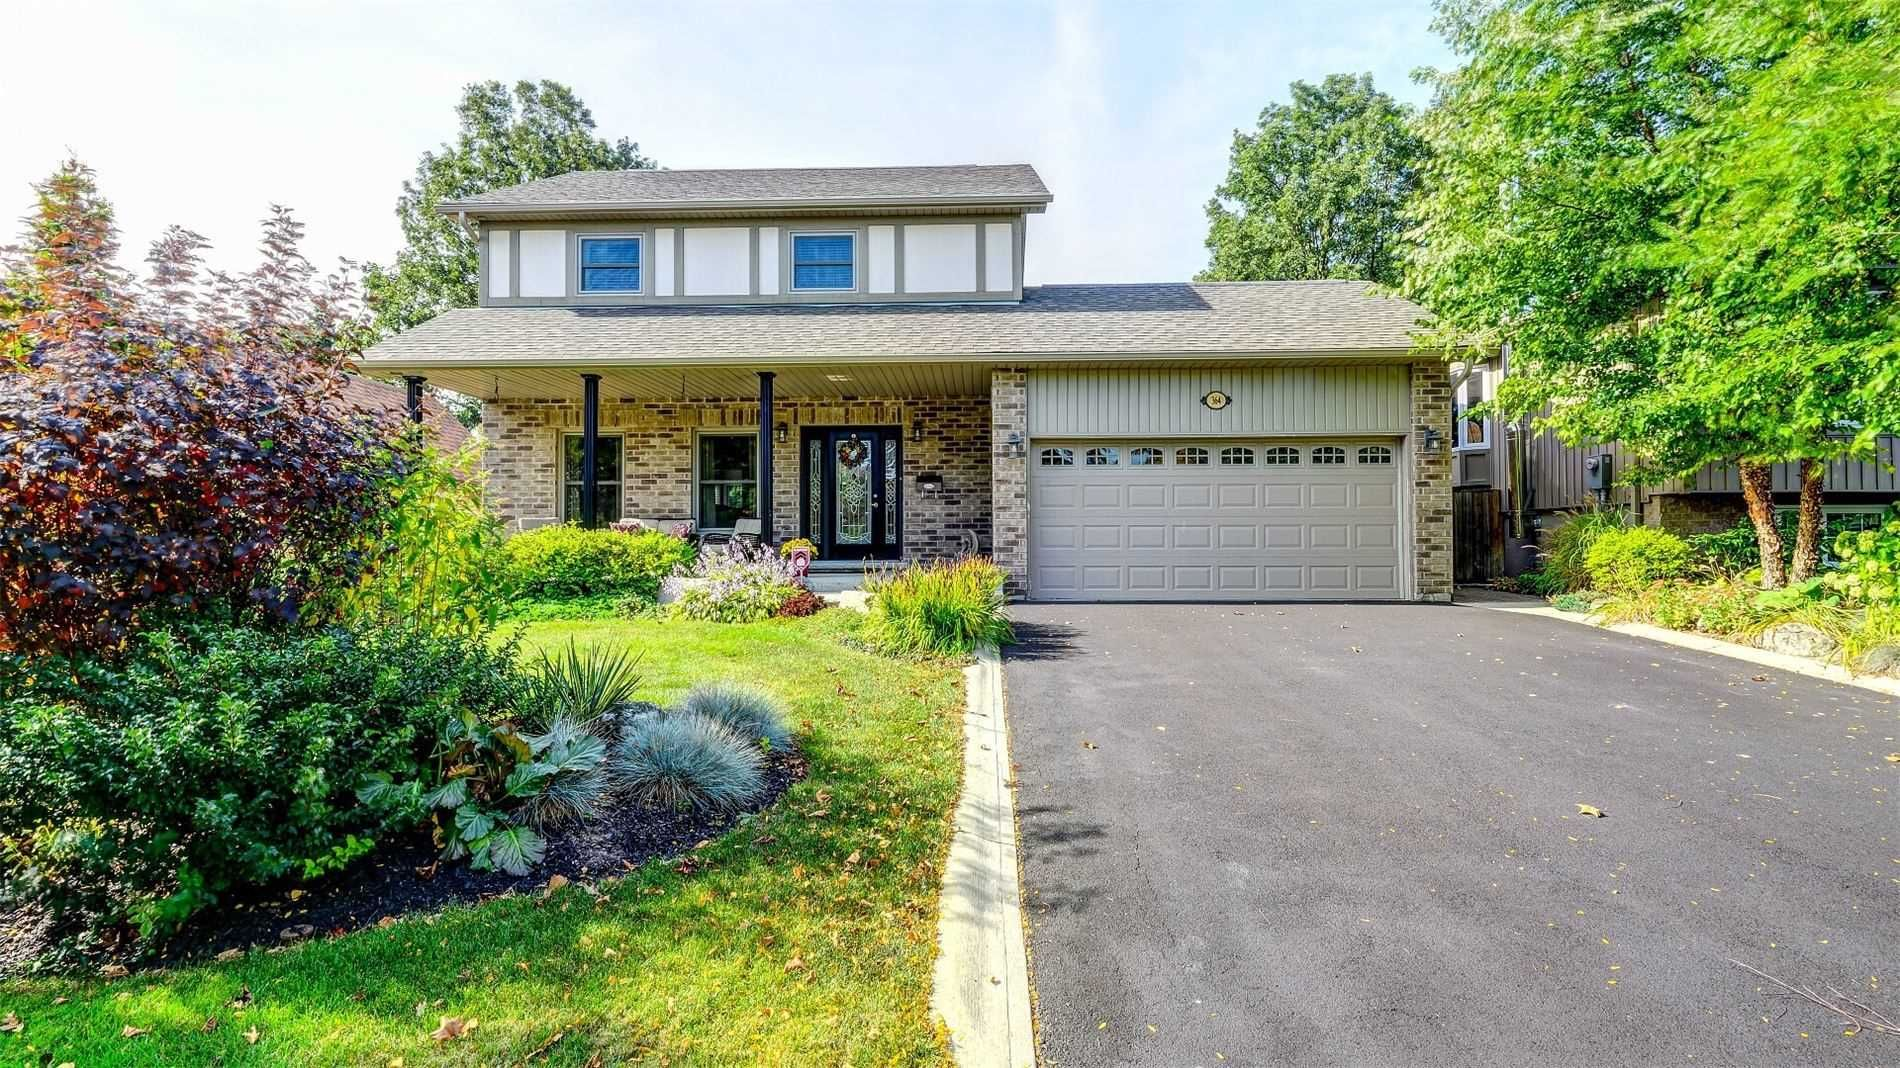 Main Photo: 364 Wilson Drive in Milton: Dorset Park House (2-Storey) for sale : MLS®# W4593394